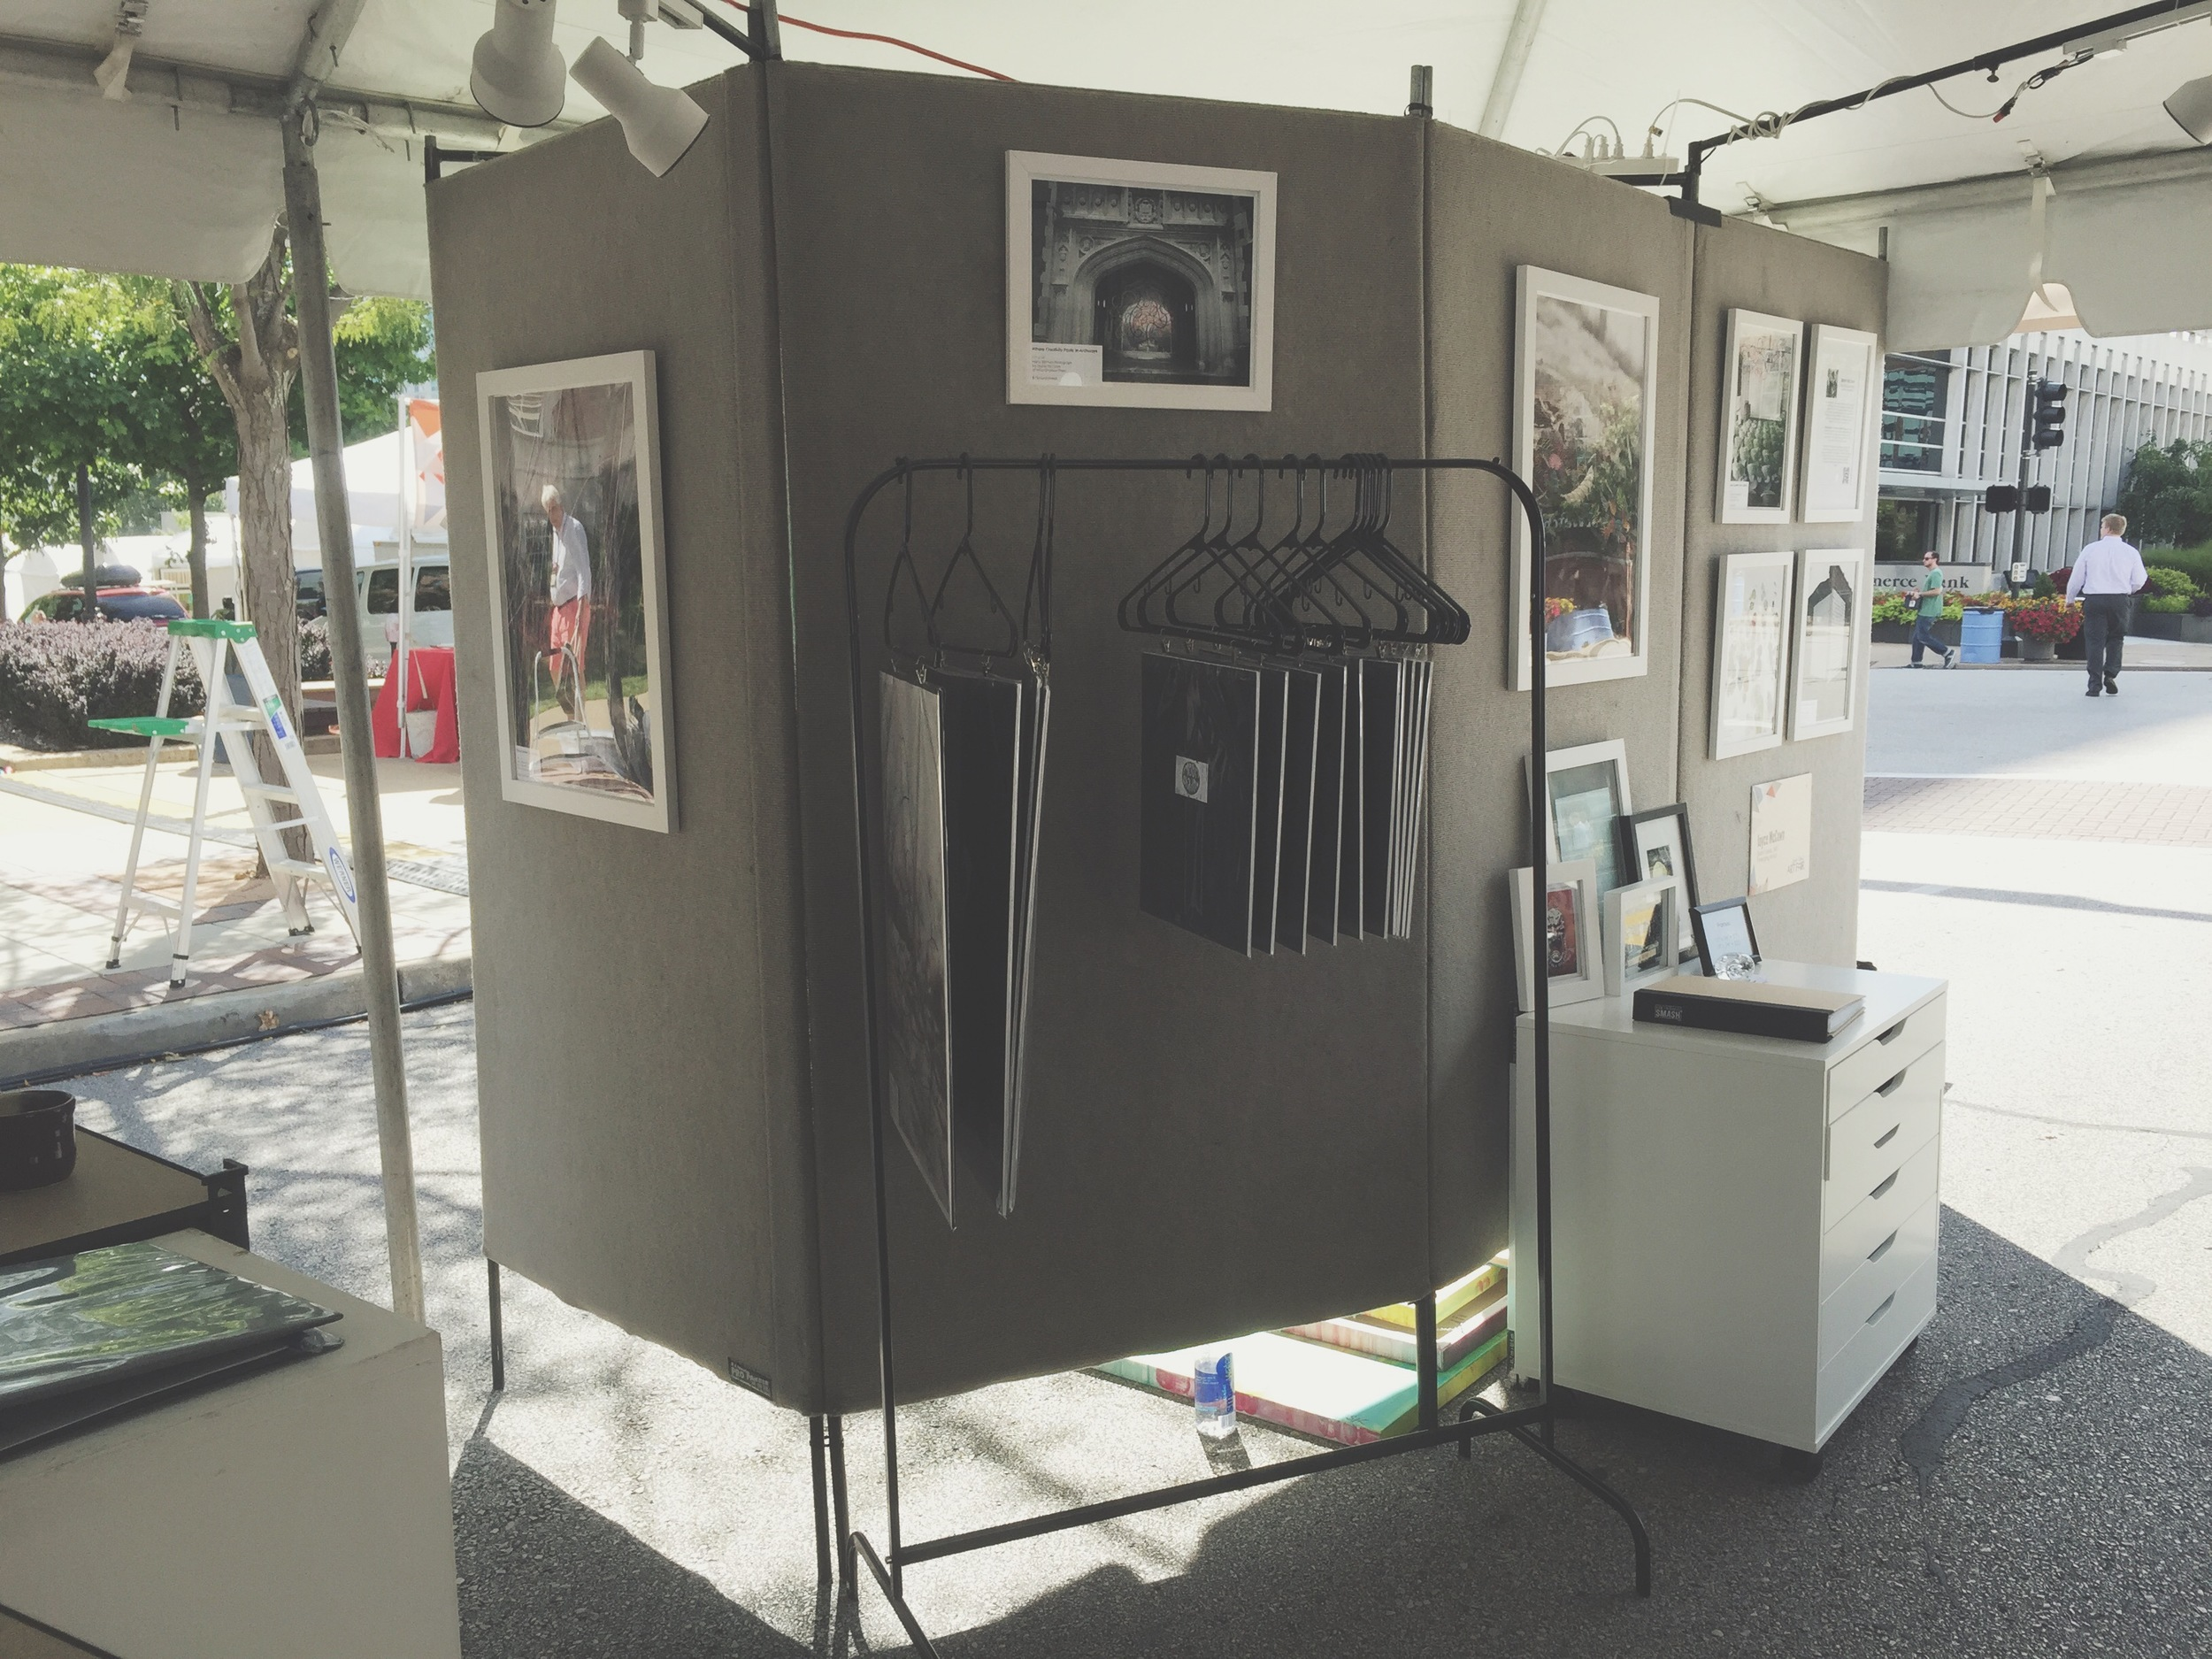 This was the first time I've used a clothing rack to display artwork, and I loved it! It worked great, except that the wind kept pushing all the pieces to one side.